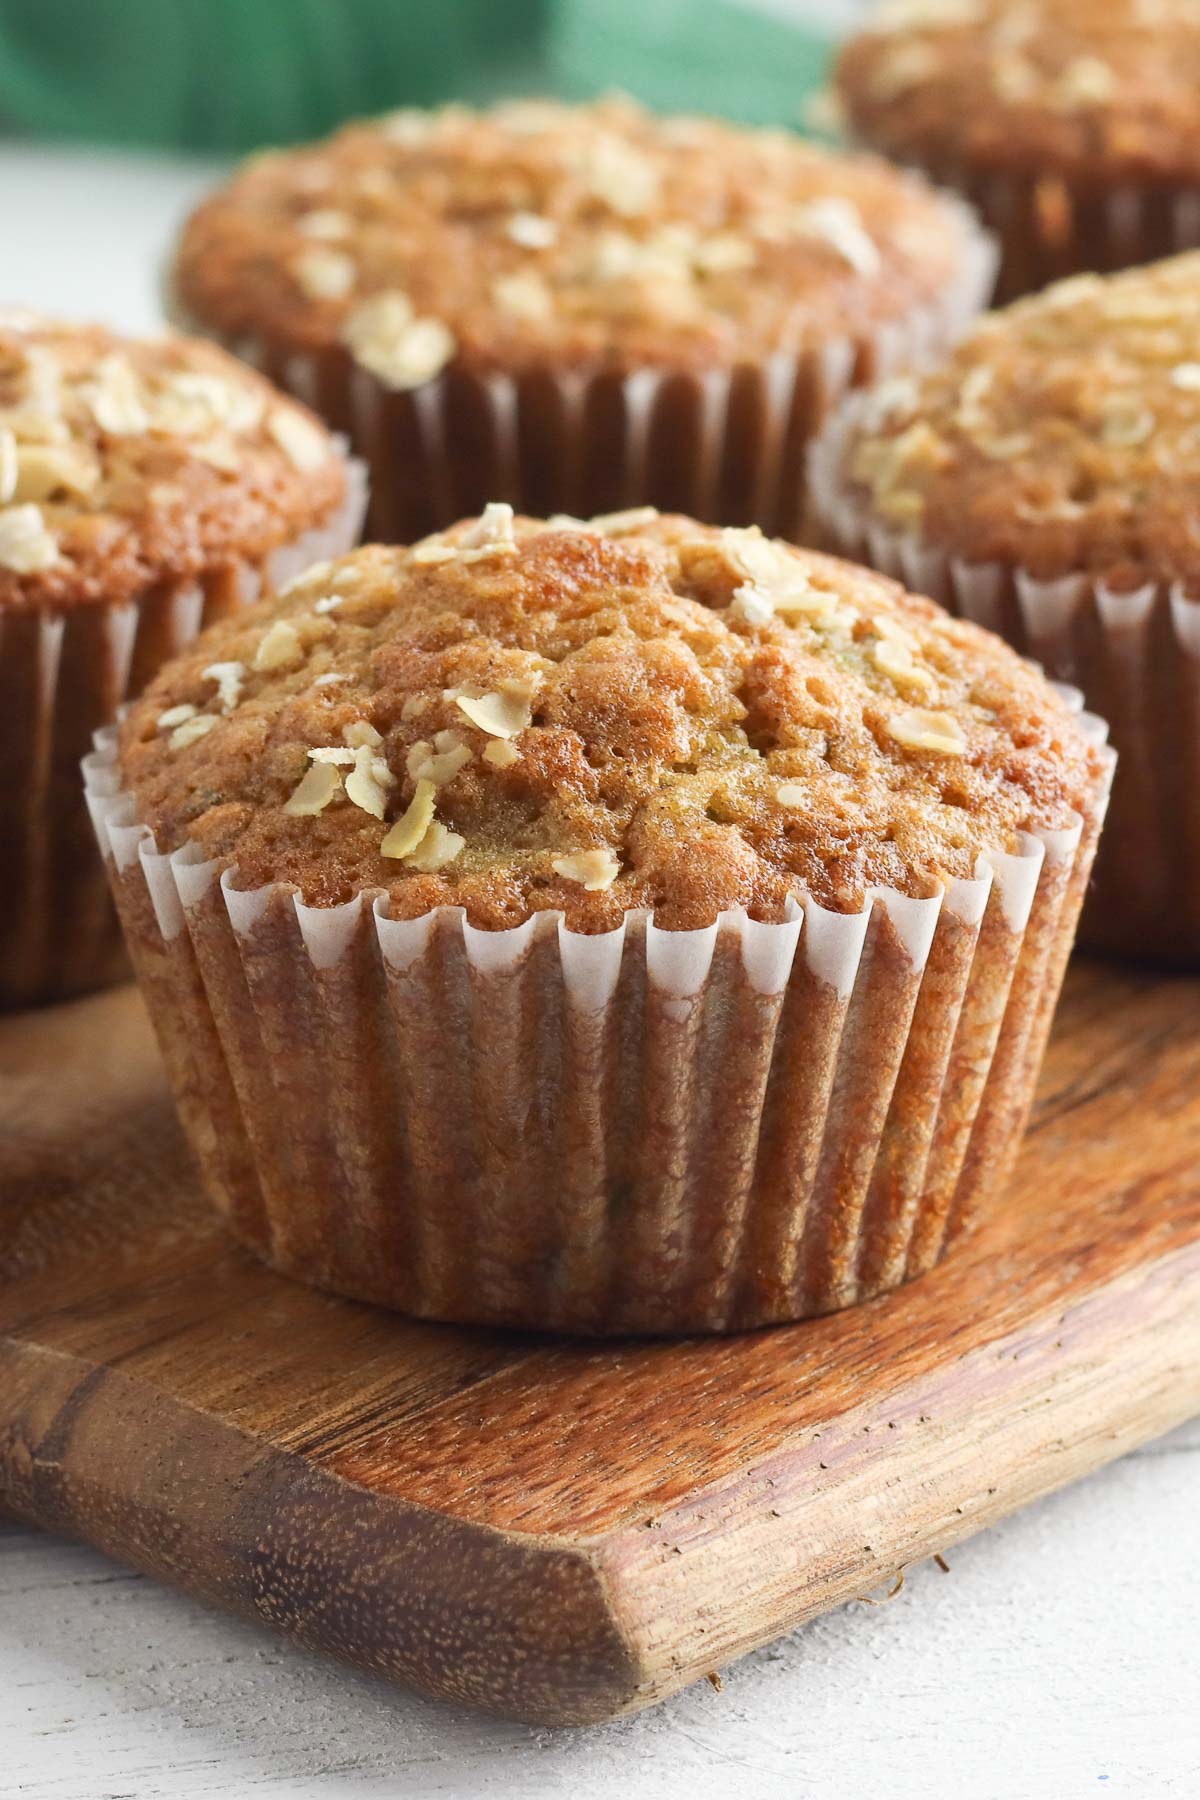 single zucchini muffin on wood cutting board